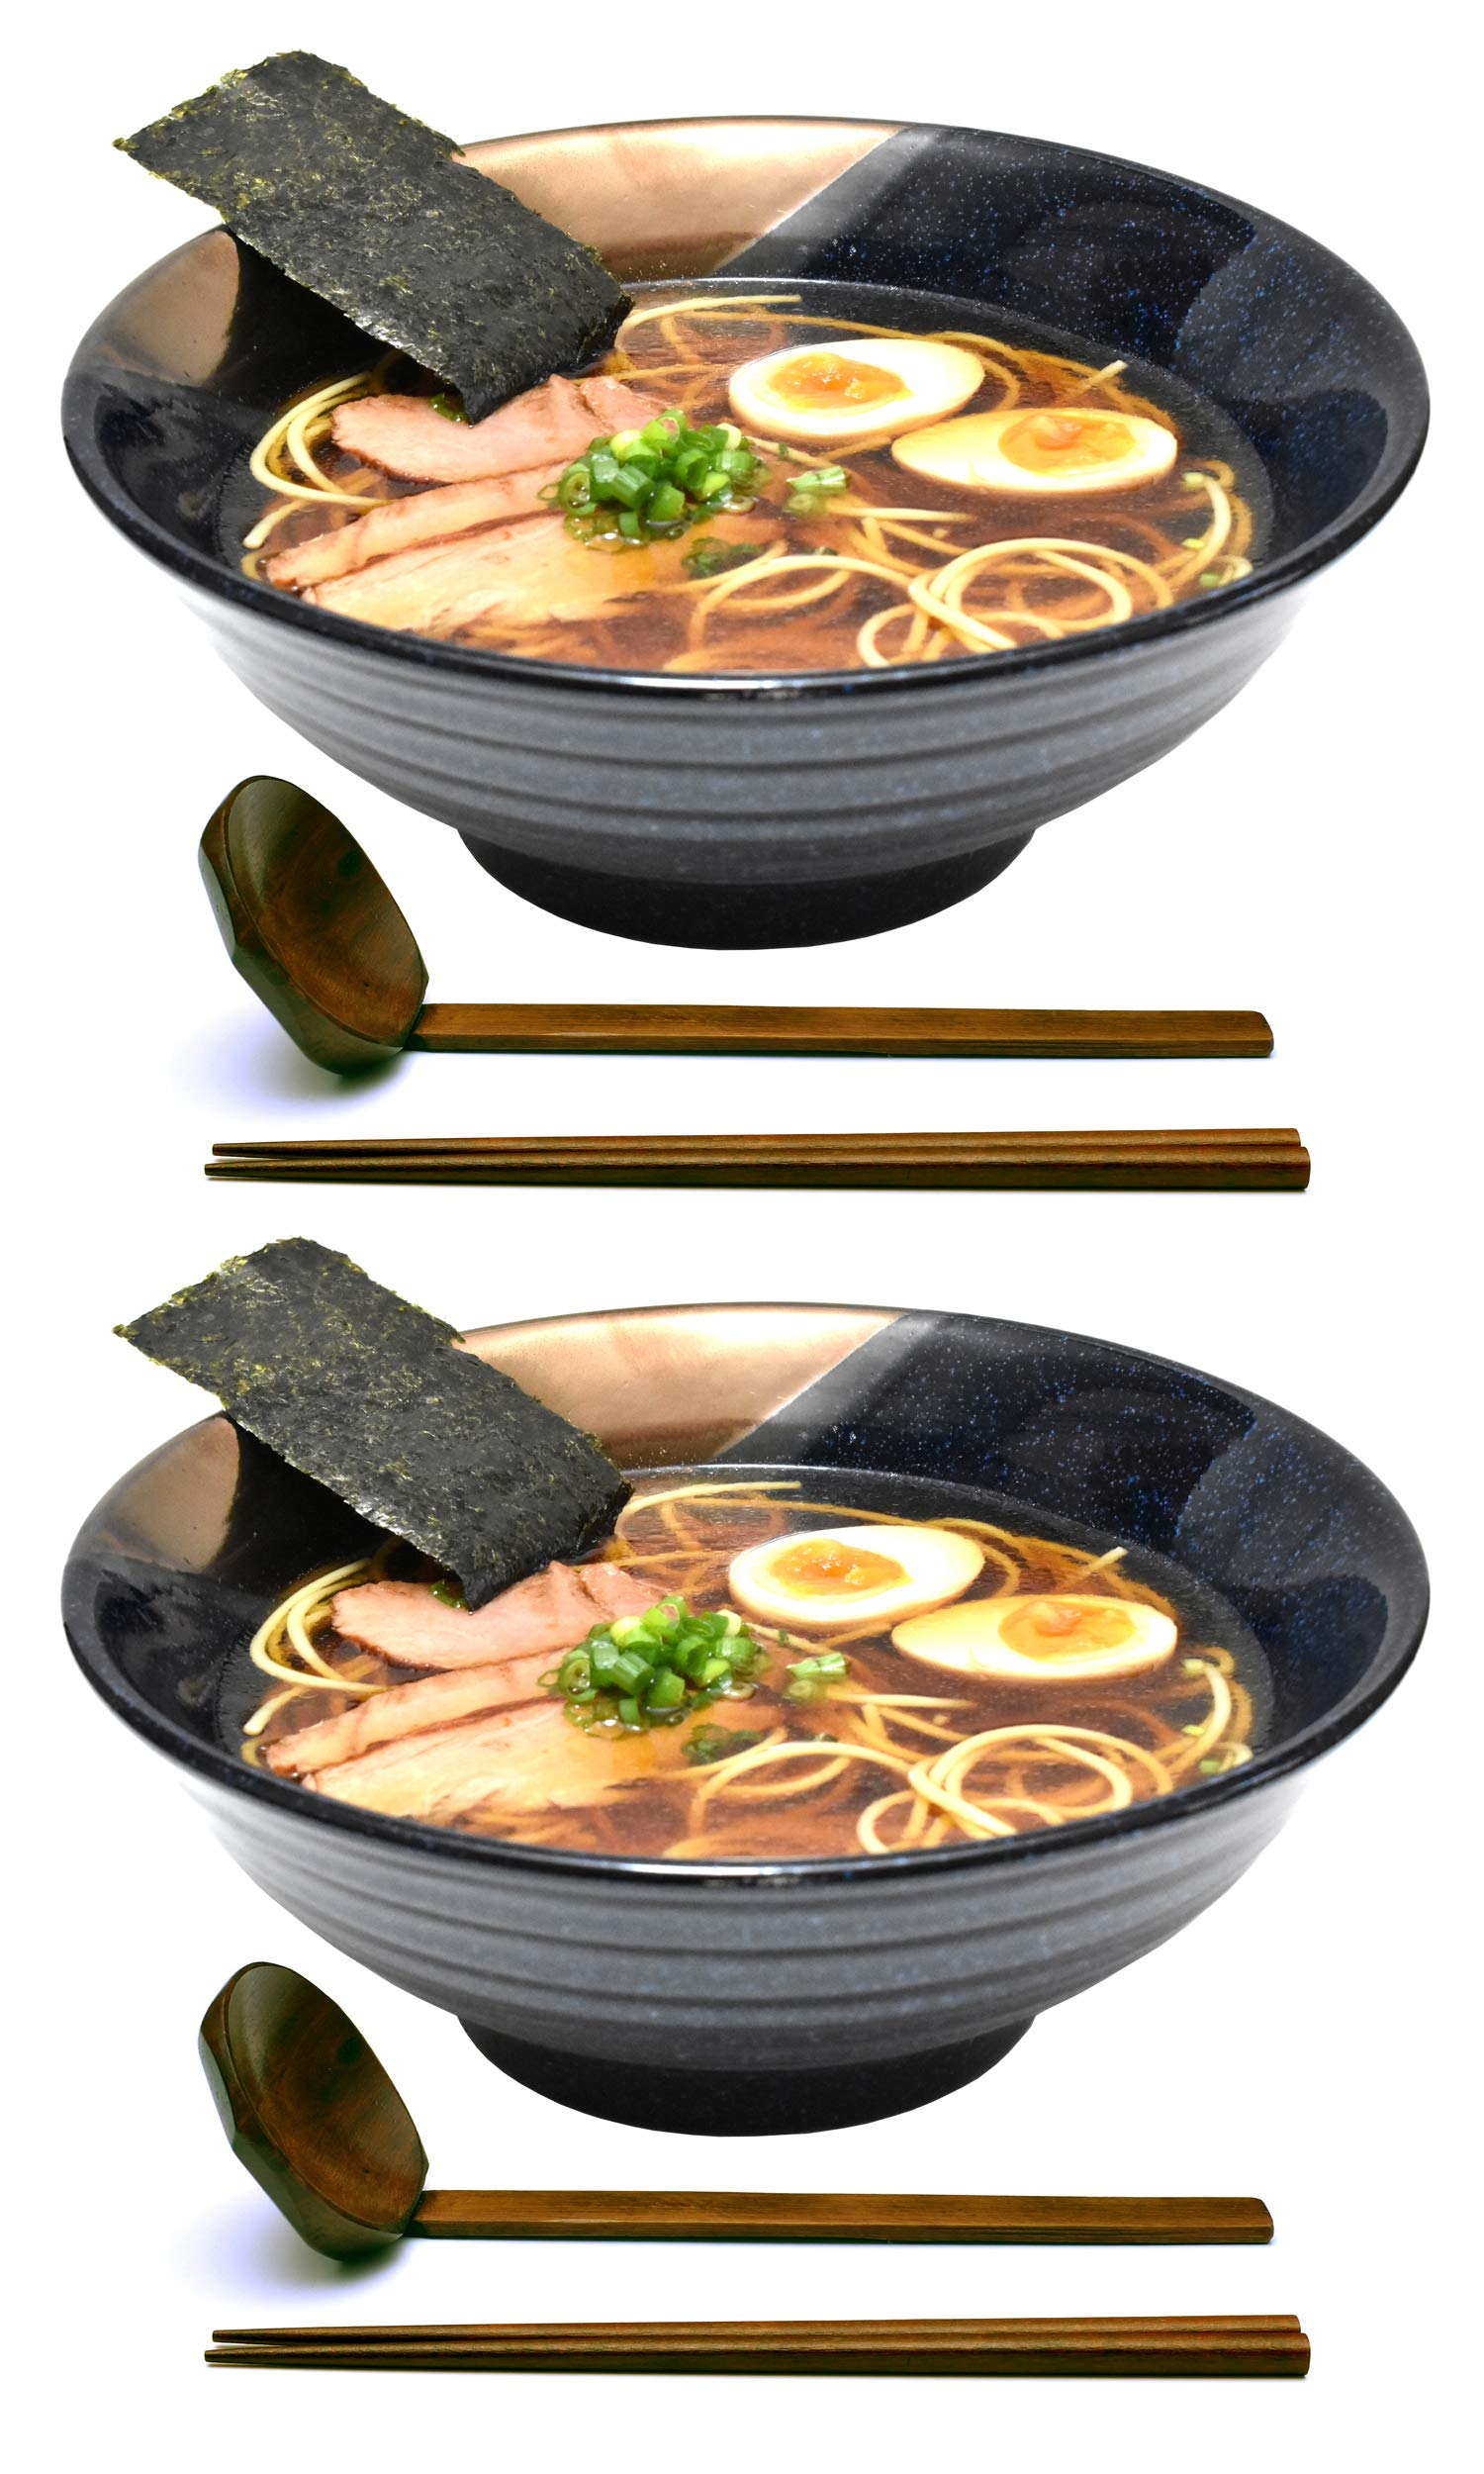 2 sets (6 piece) 51 fl oz. Large Ceramic Japanese Ramen Noodle Soup Bowl Dishware Set with Matching Spoon and Chopsticks for Udon Soba Pho Asian Noodles (Blue with Gold Accents)